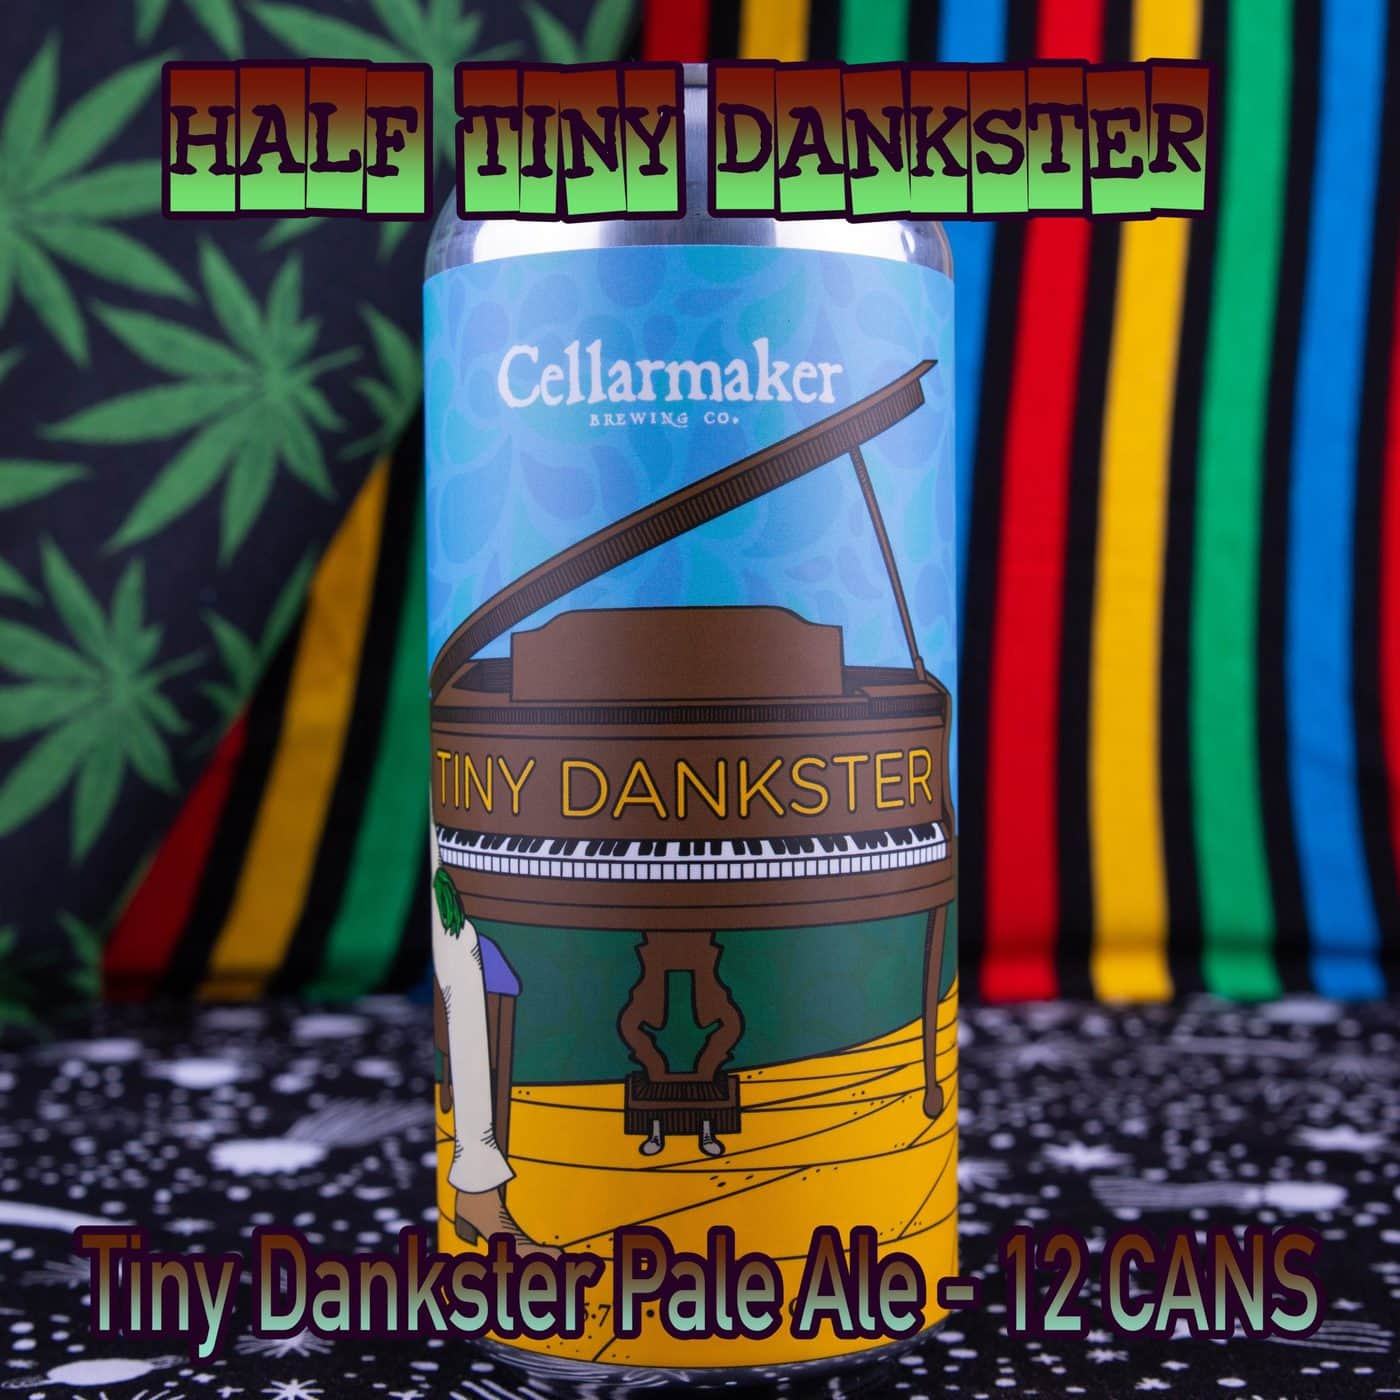 Half Case 12 CANS Tiny Dankster Pale Ale – Shipping Out Tuesday 4/13 For Next Day Delivery*